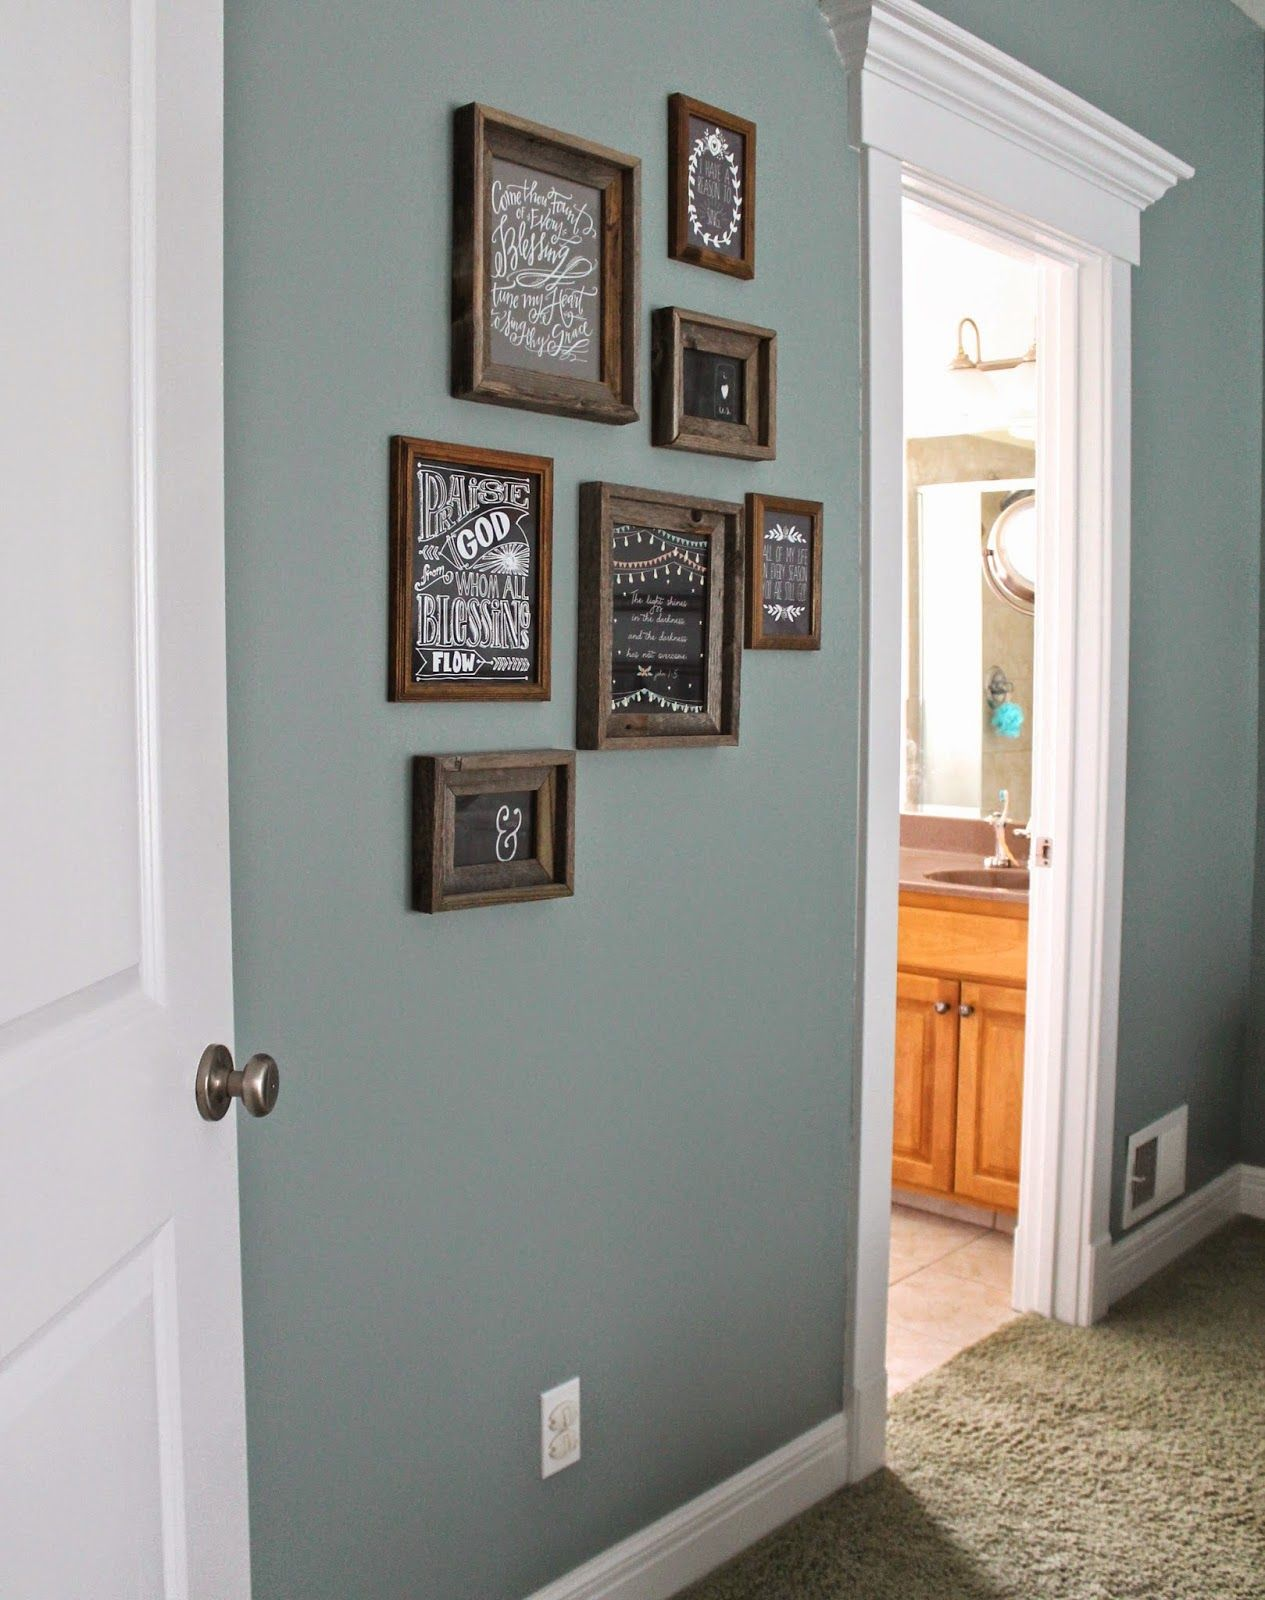 Paint color valspar blue arrow dark rustic frames hobby What color room